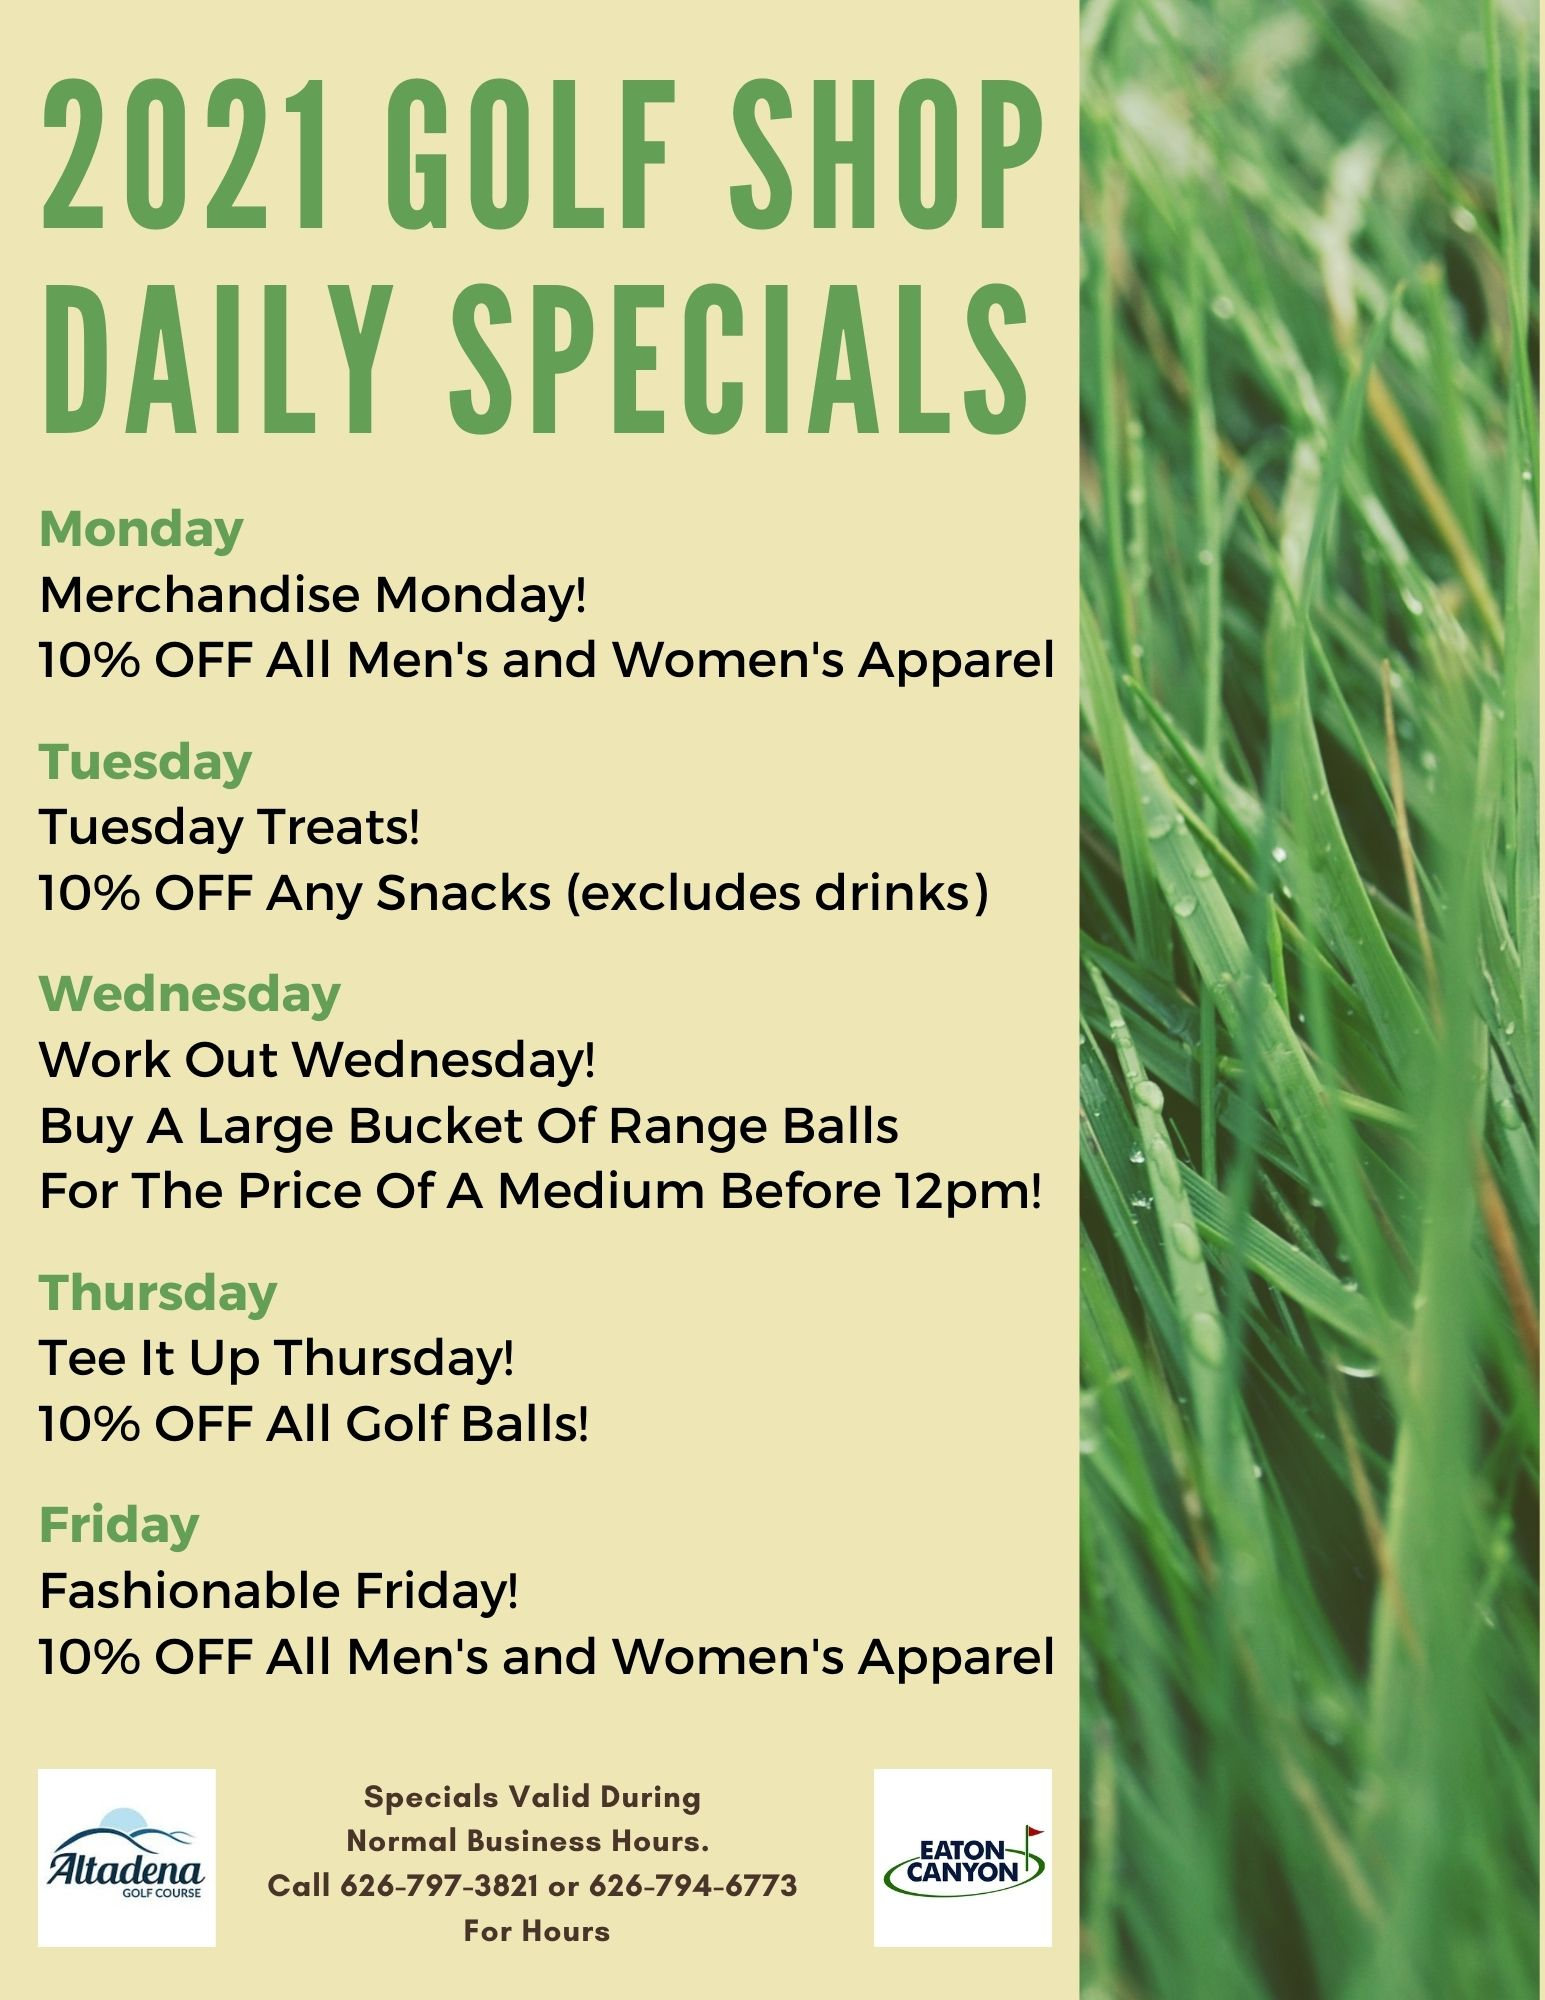 2021 Golf Shop Daily Specials